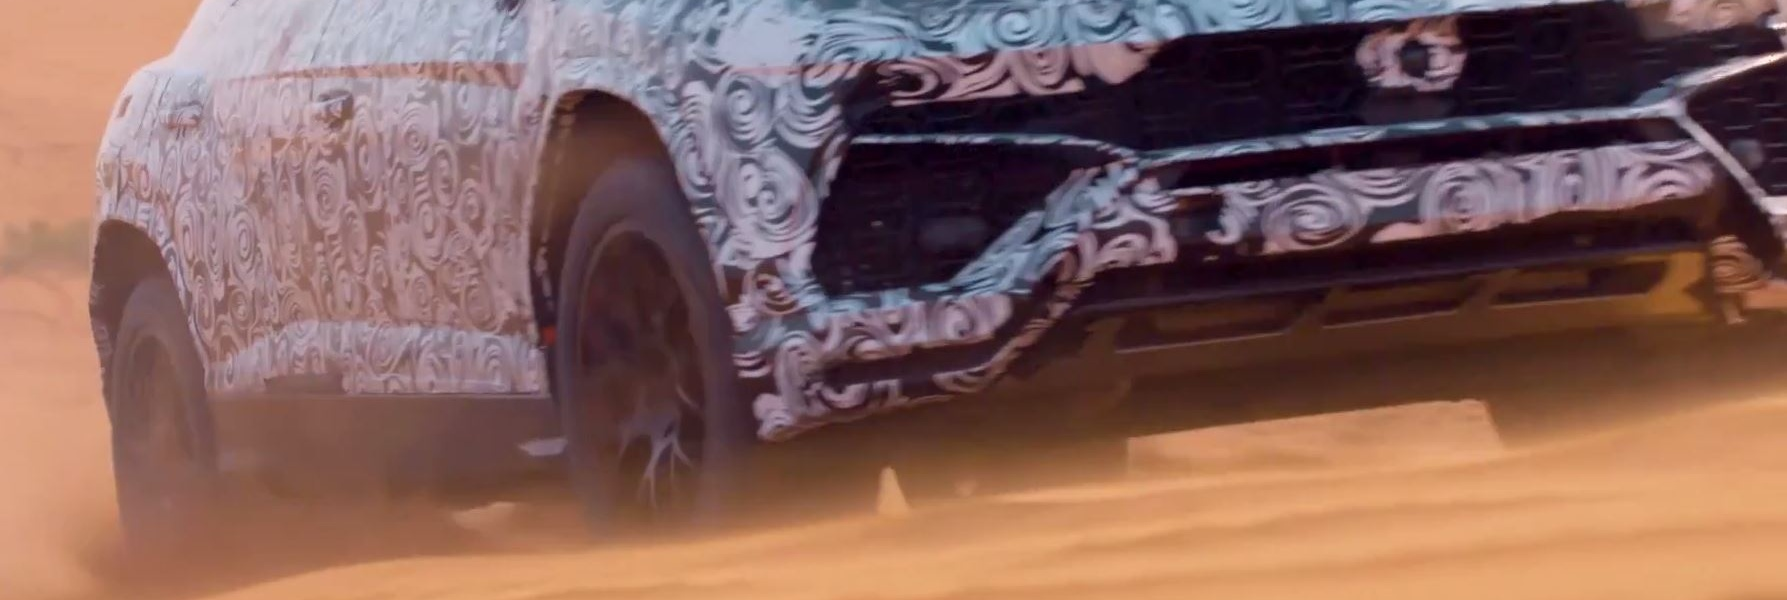 lamborghini-urus-takes-to-the-dunes-in-sabbia-mode-teaser_1.jpg